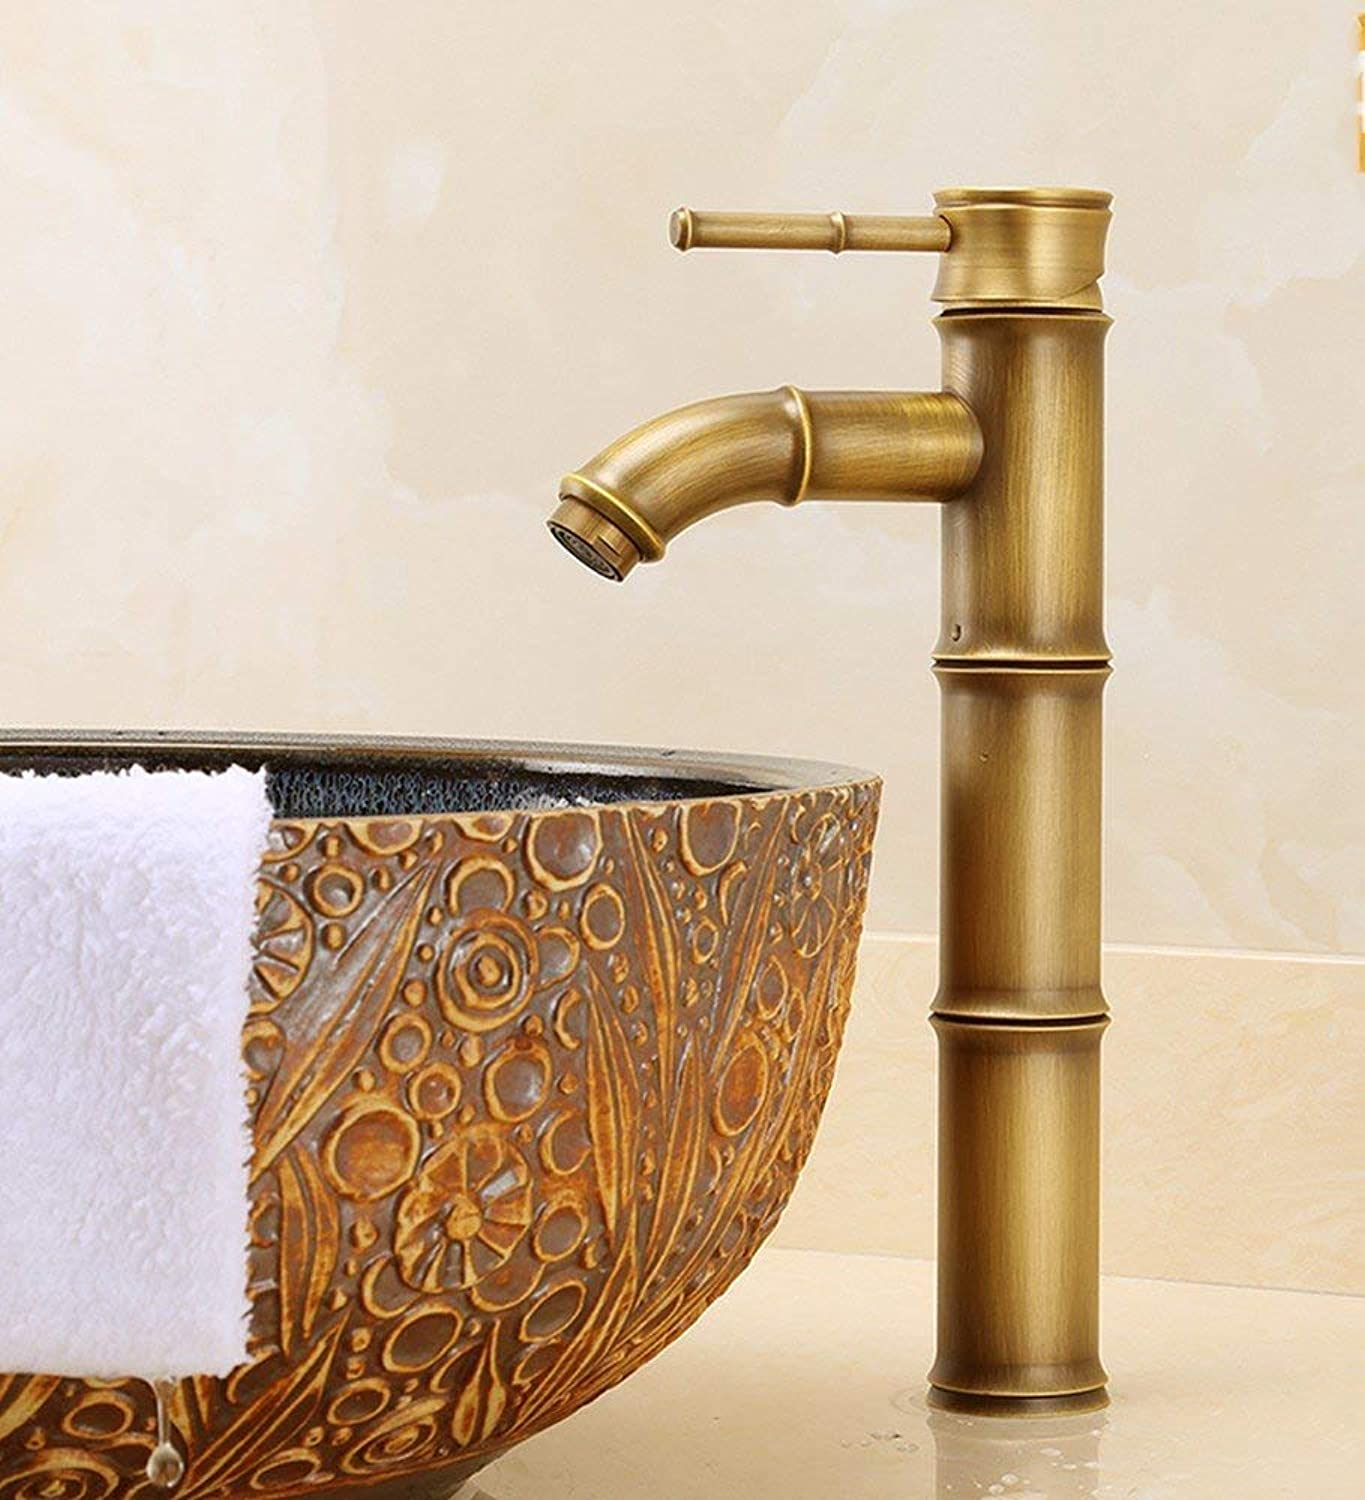 Oudan Basin Mixer Tap Bathroom Sink Faucet European retro style, copper, hot and cold, bamboo, Single Hole basin, hand wash in the sink mixer 6 (color   3)